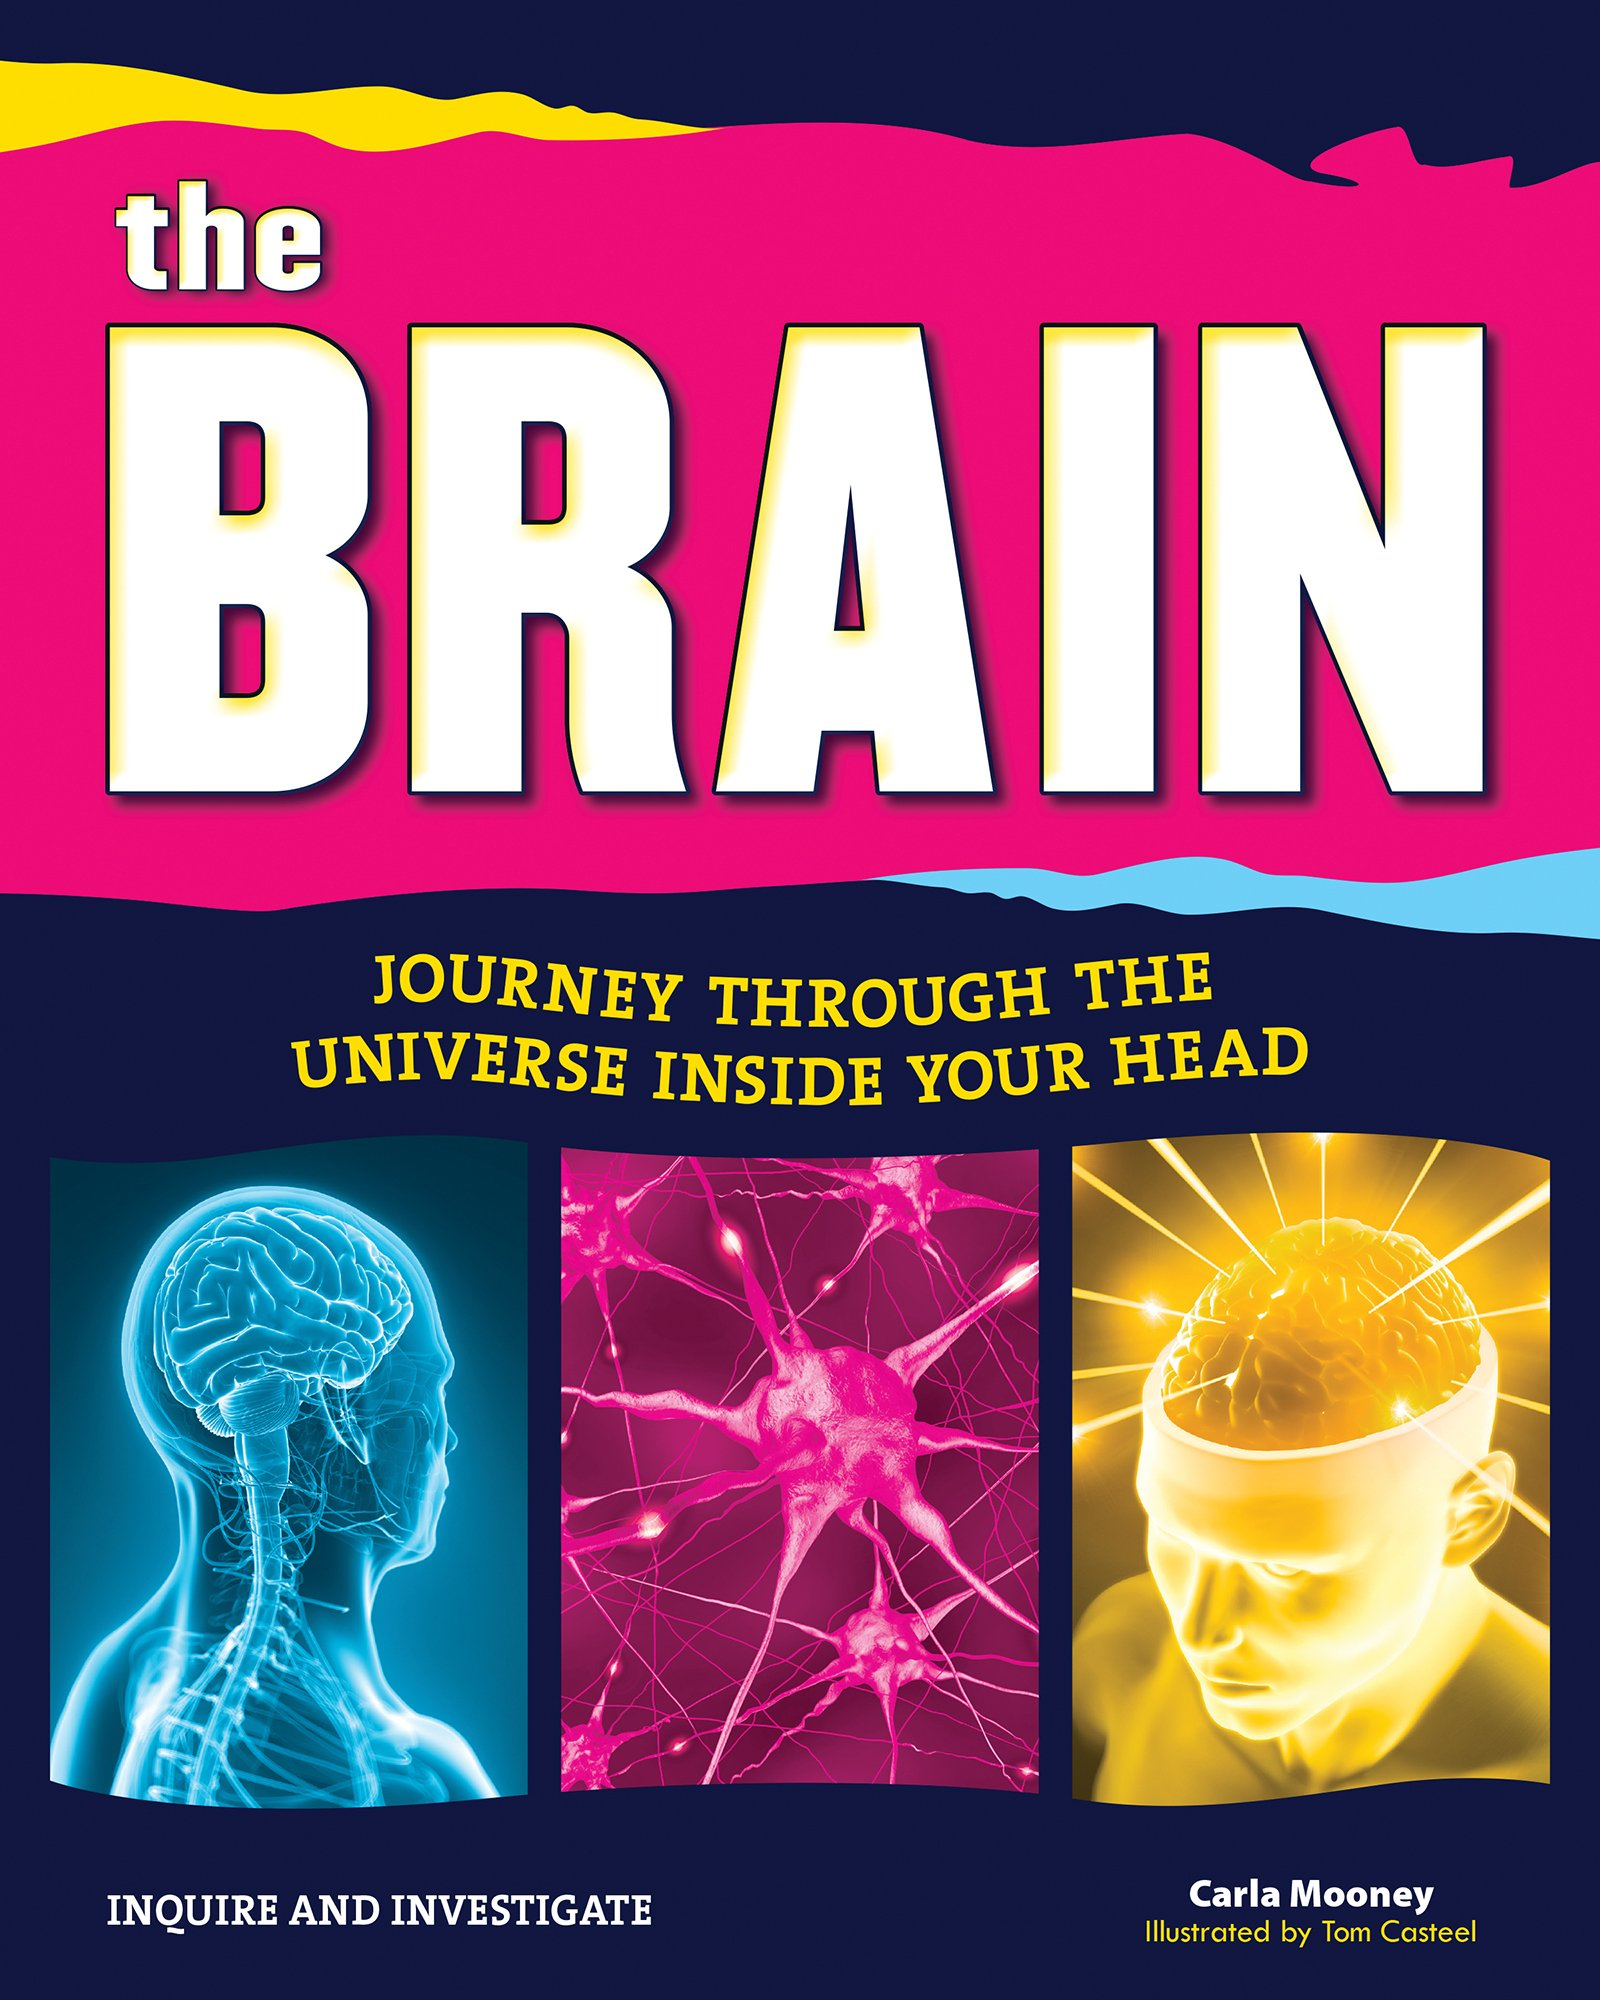 Amazon.com: The Brain: Journey Through the Universe Inside Your Head  (Inquire and Investigate) (9781619302785): Carla Mooney, Tom Casteel: Books